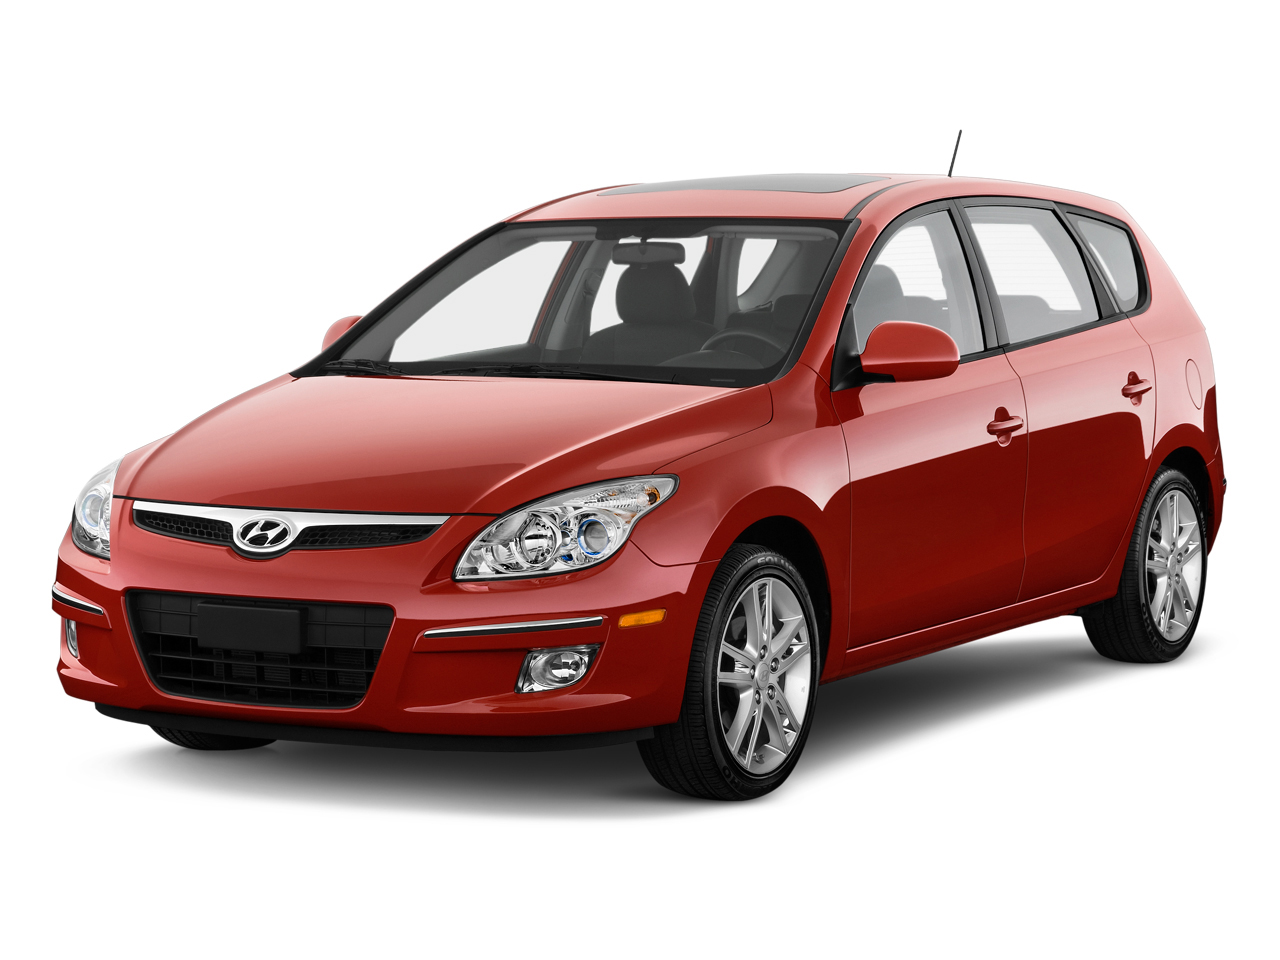 2011 Hyundai Elantra Touring Review Ratings Specs